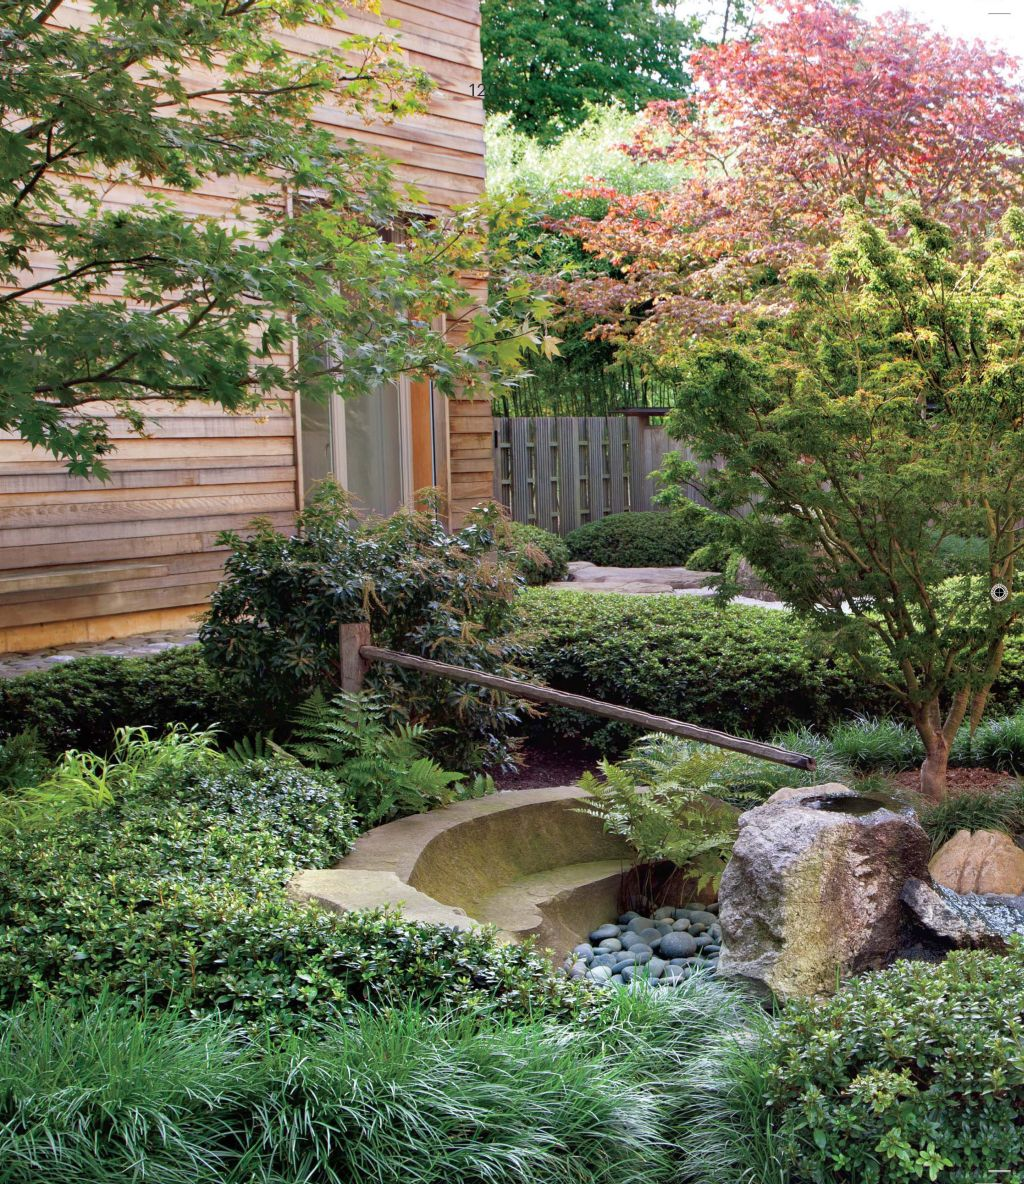 Beautiful japanese garden designs for small spaces - Garden landscape ideas for small spaces collection ...